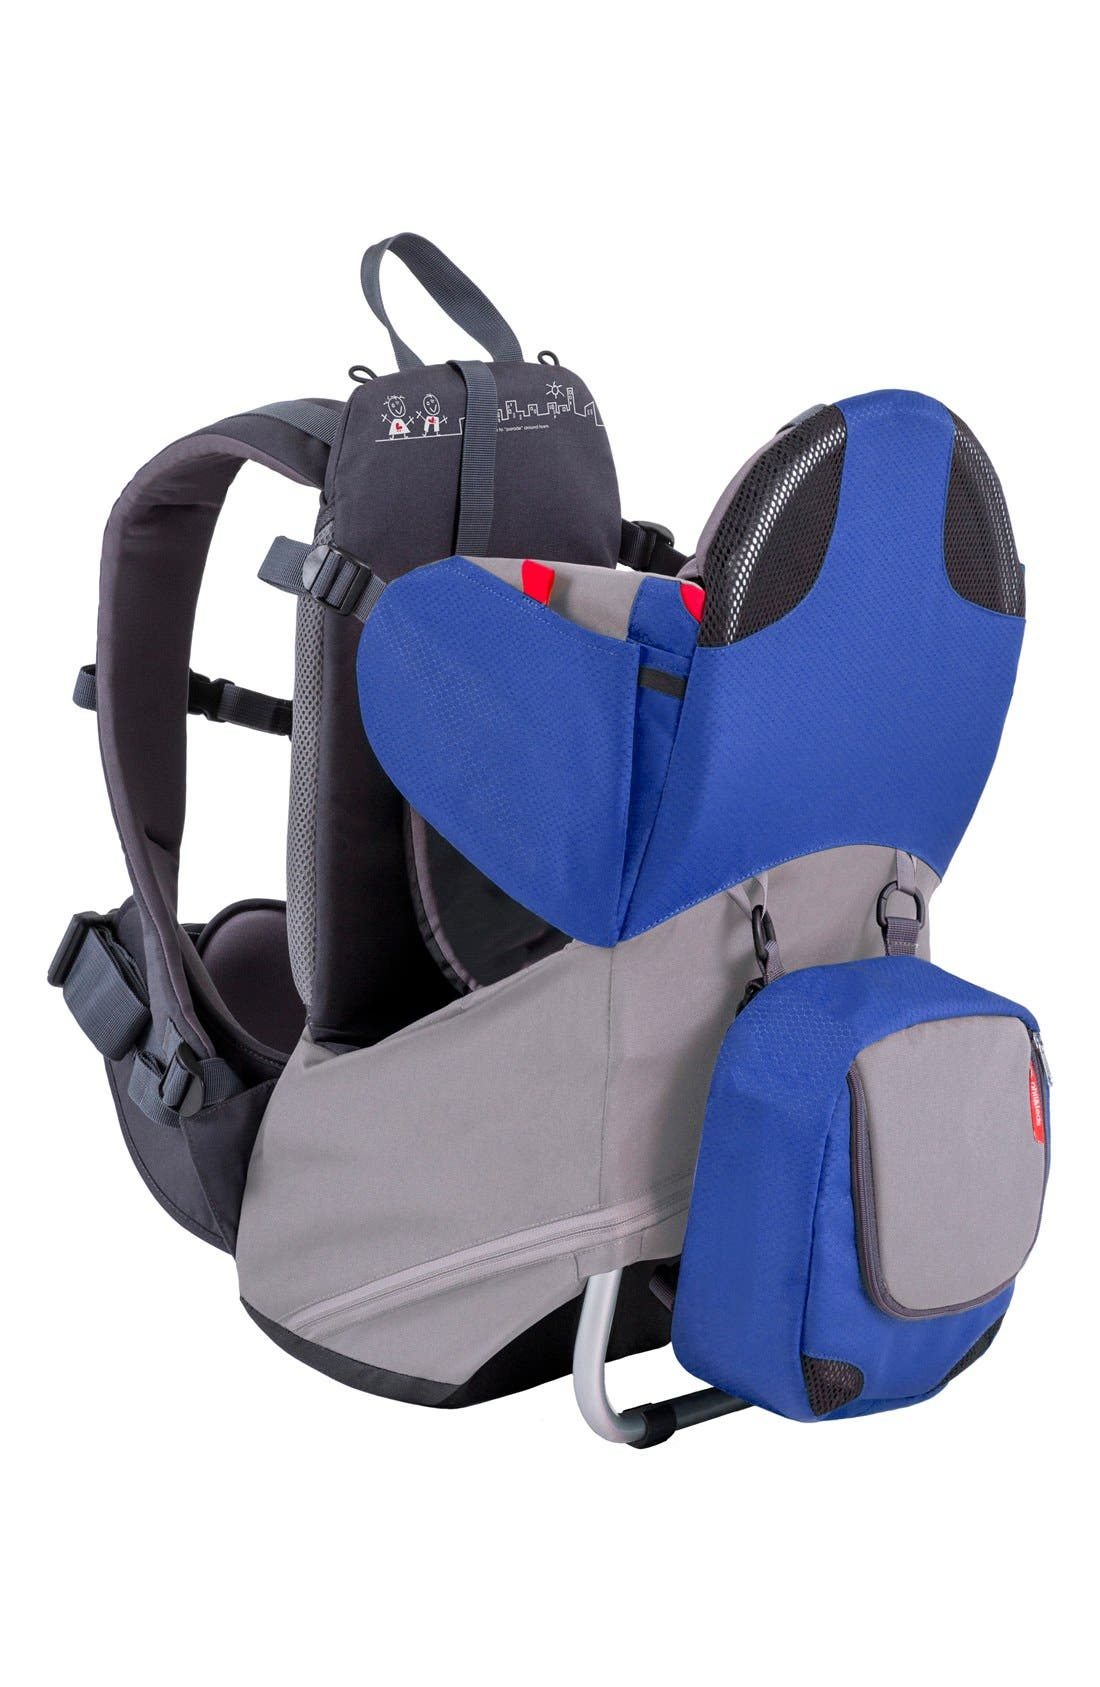 'Parade' Backpack Carrier,                             Main thumbnail 1, color,                             BLUE/ GREY